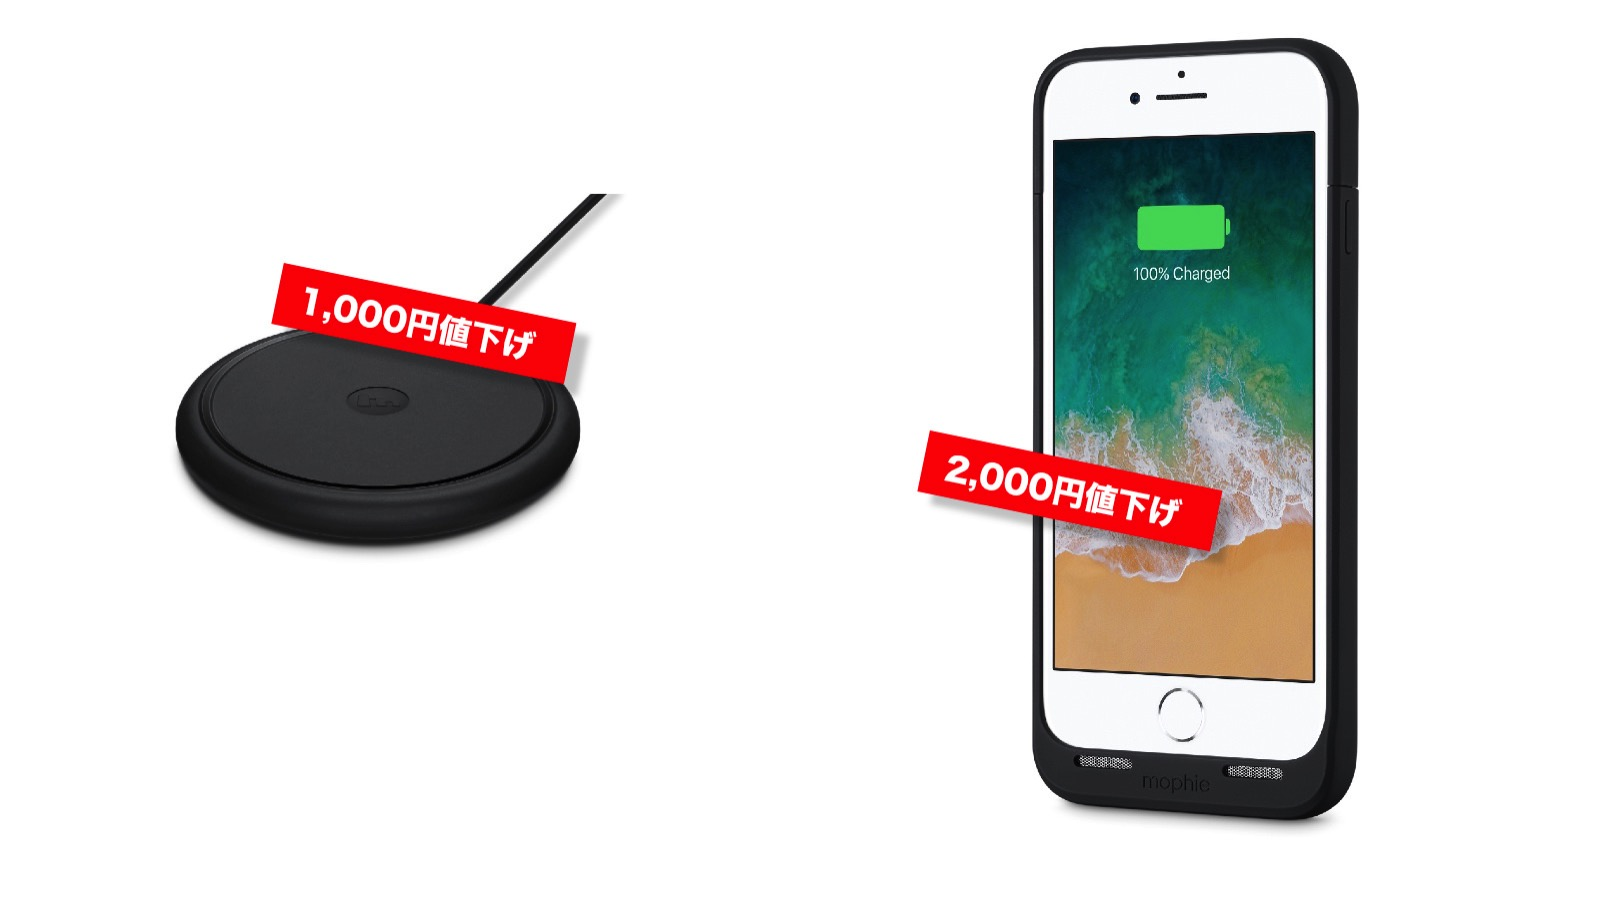 Mophie-goes-on-sale-at-apple-store-off.jpg